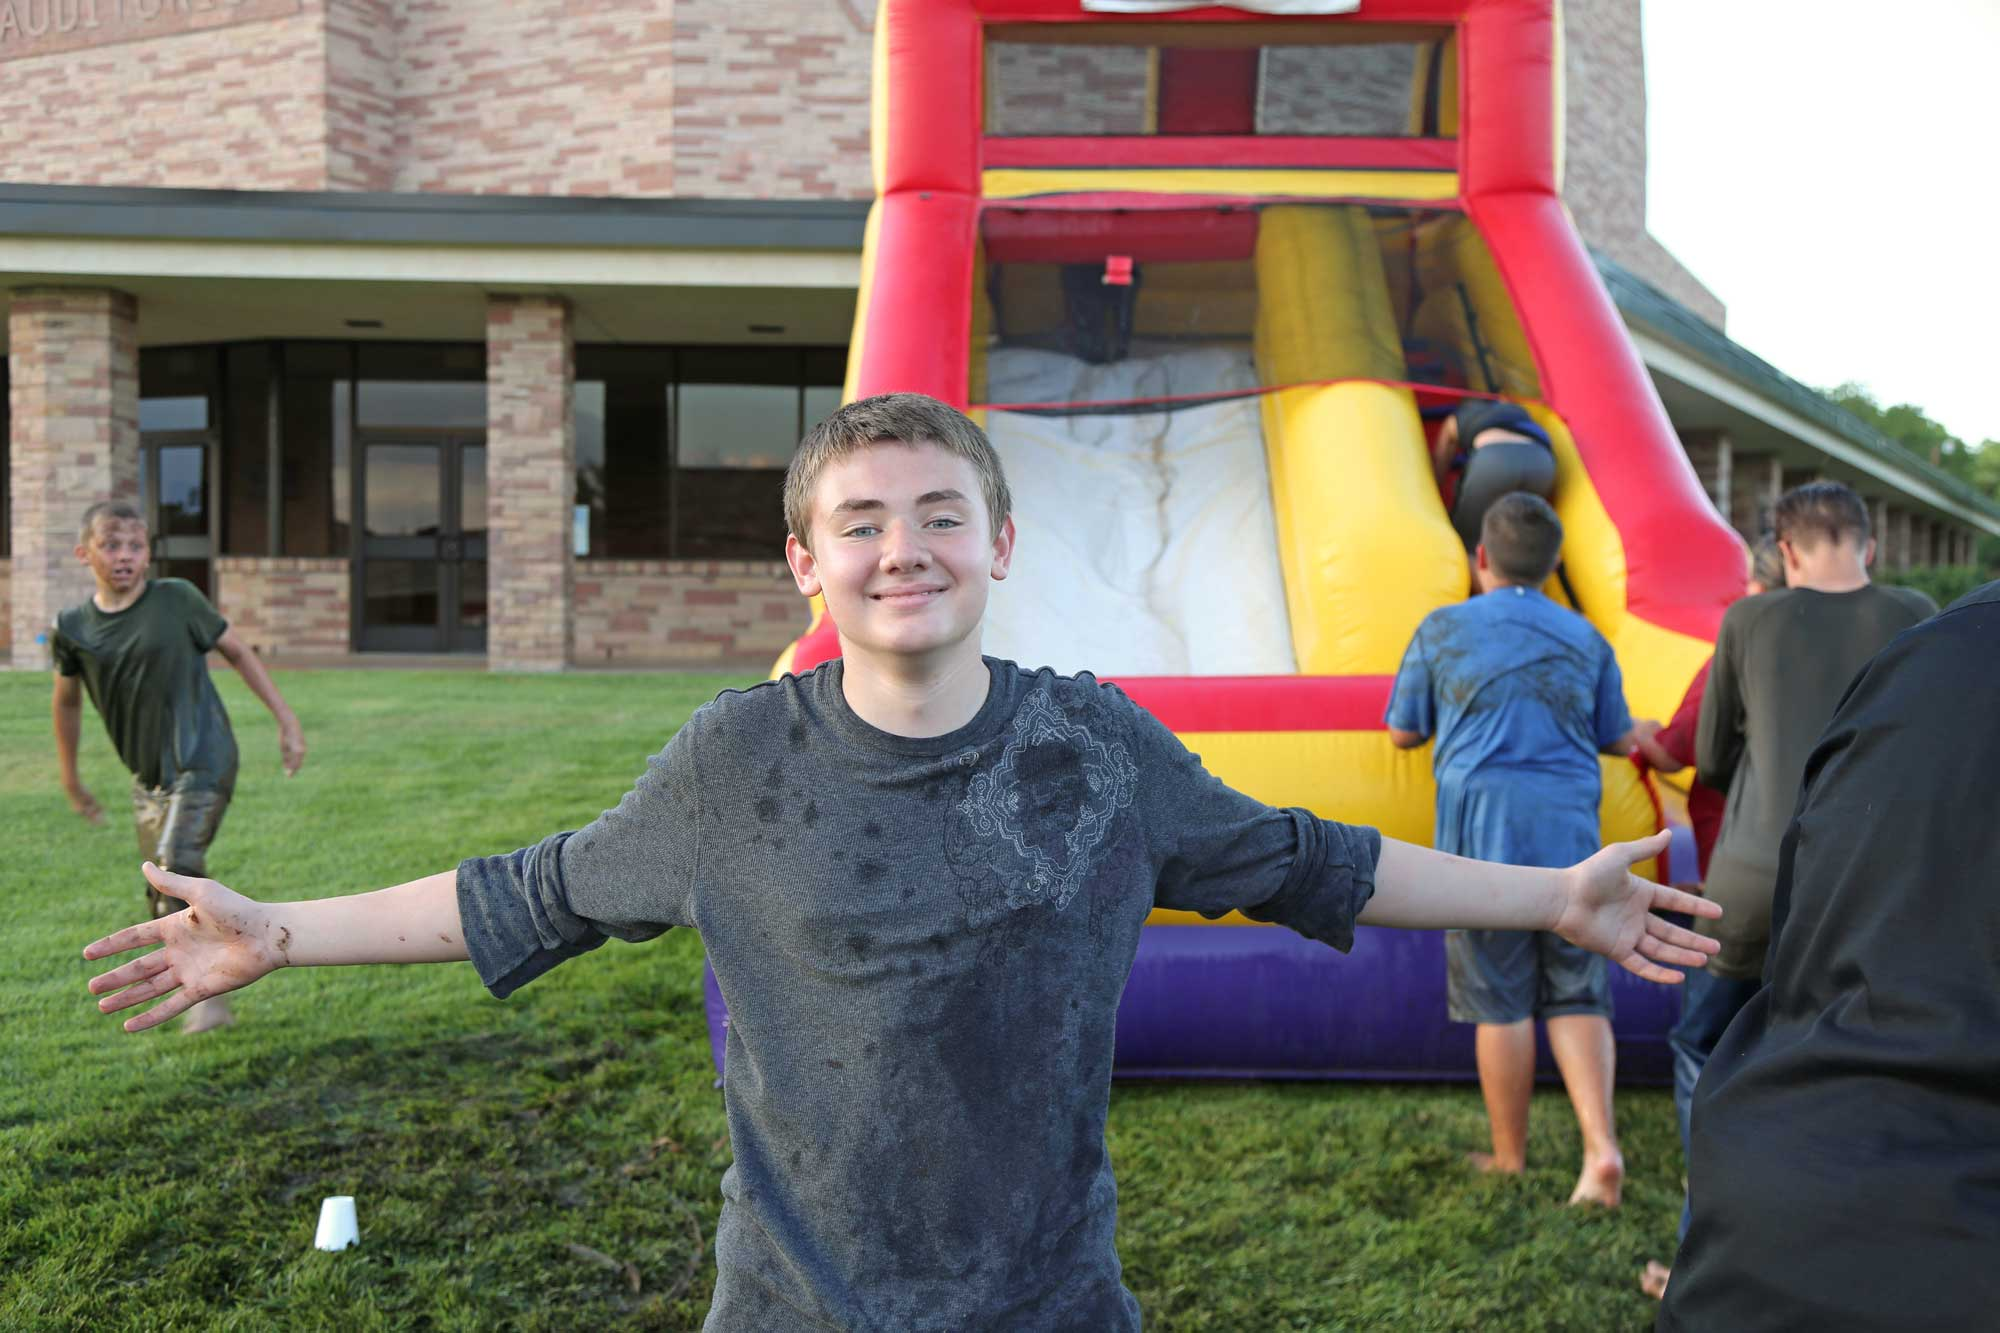 Image 2 of residents using an inflatable water slide